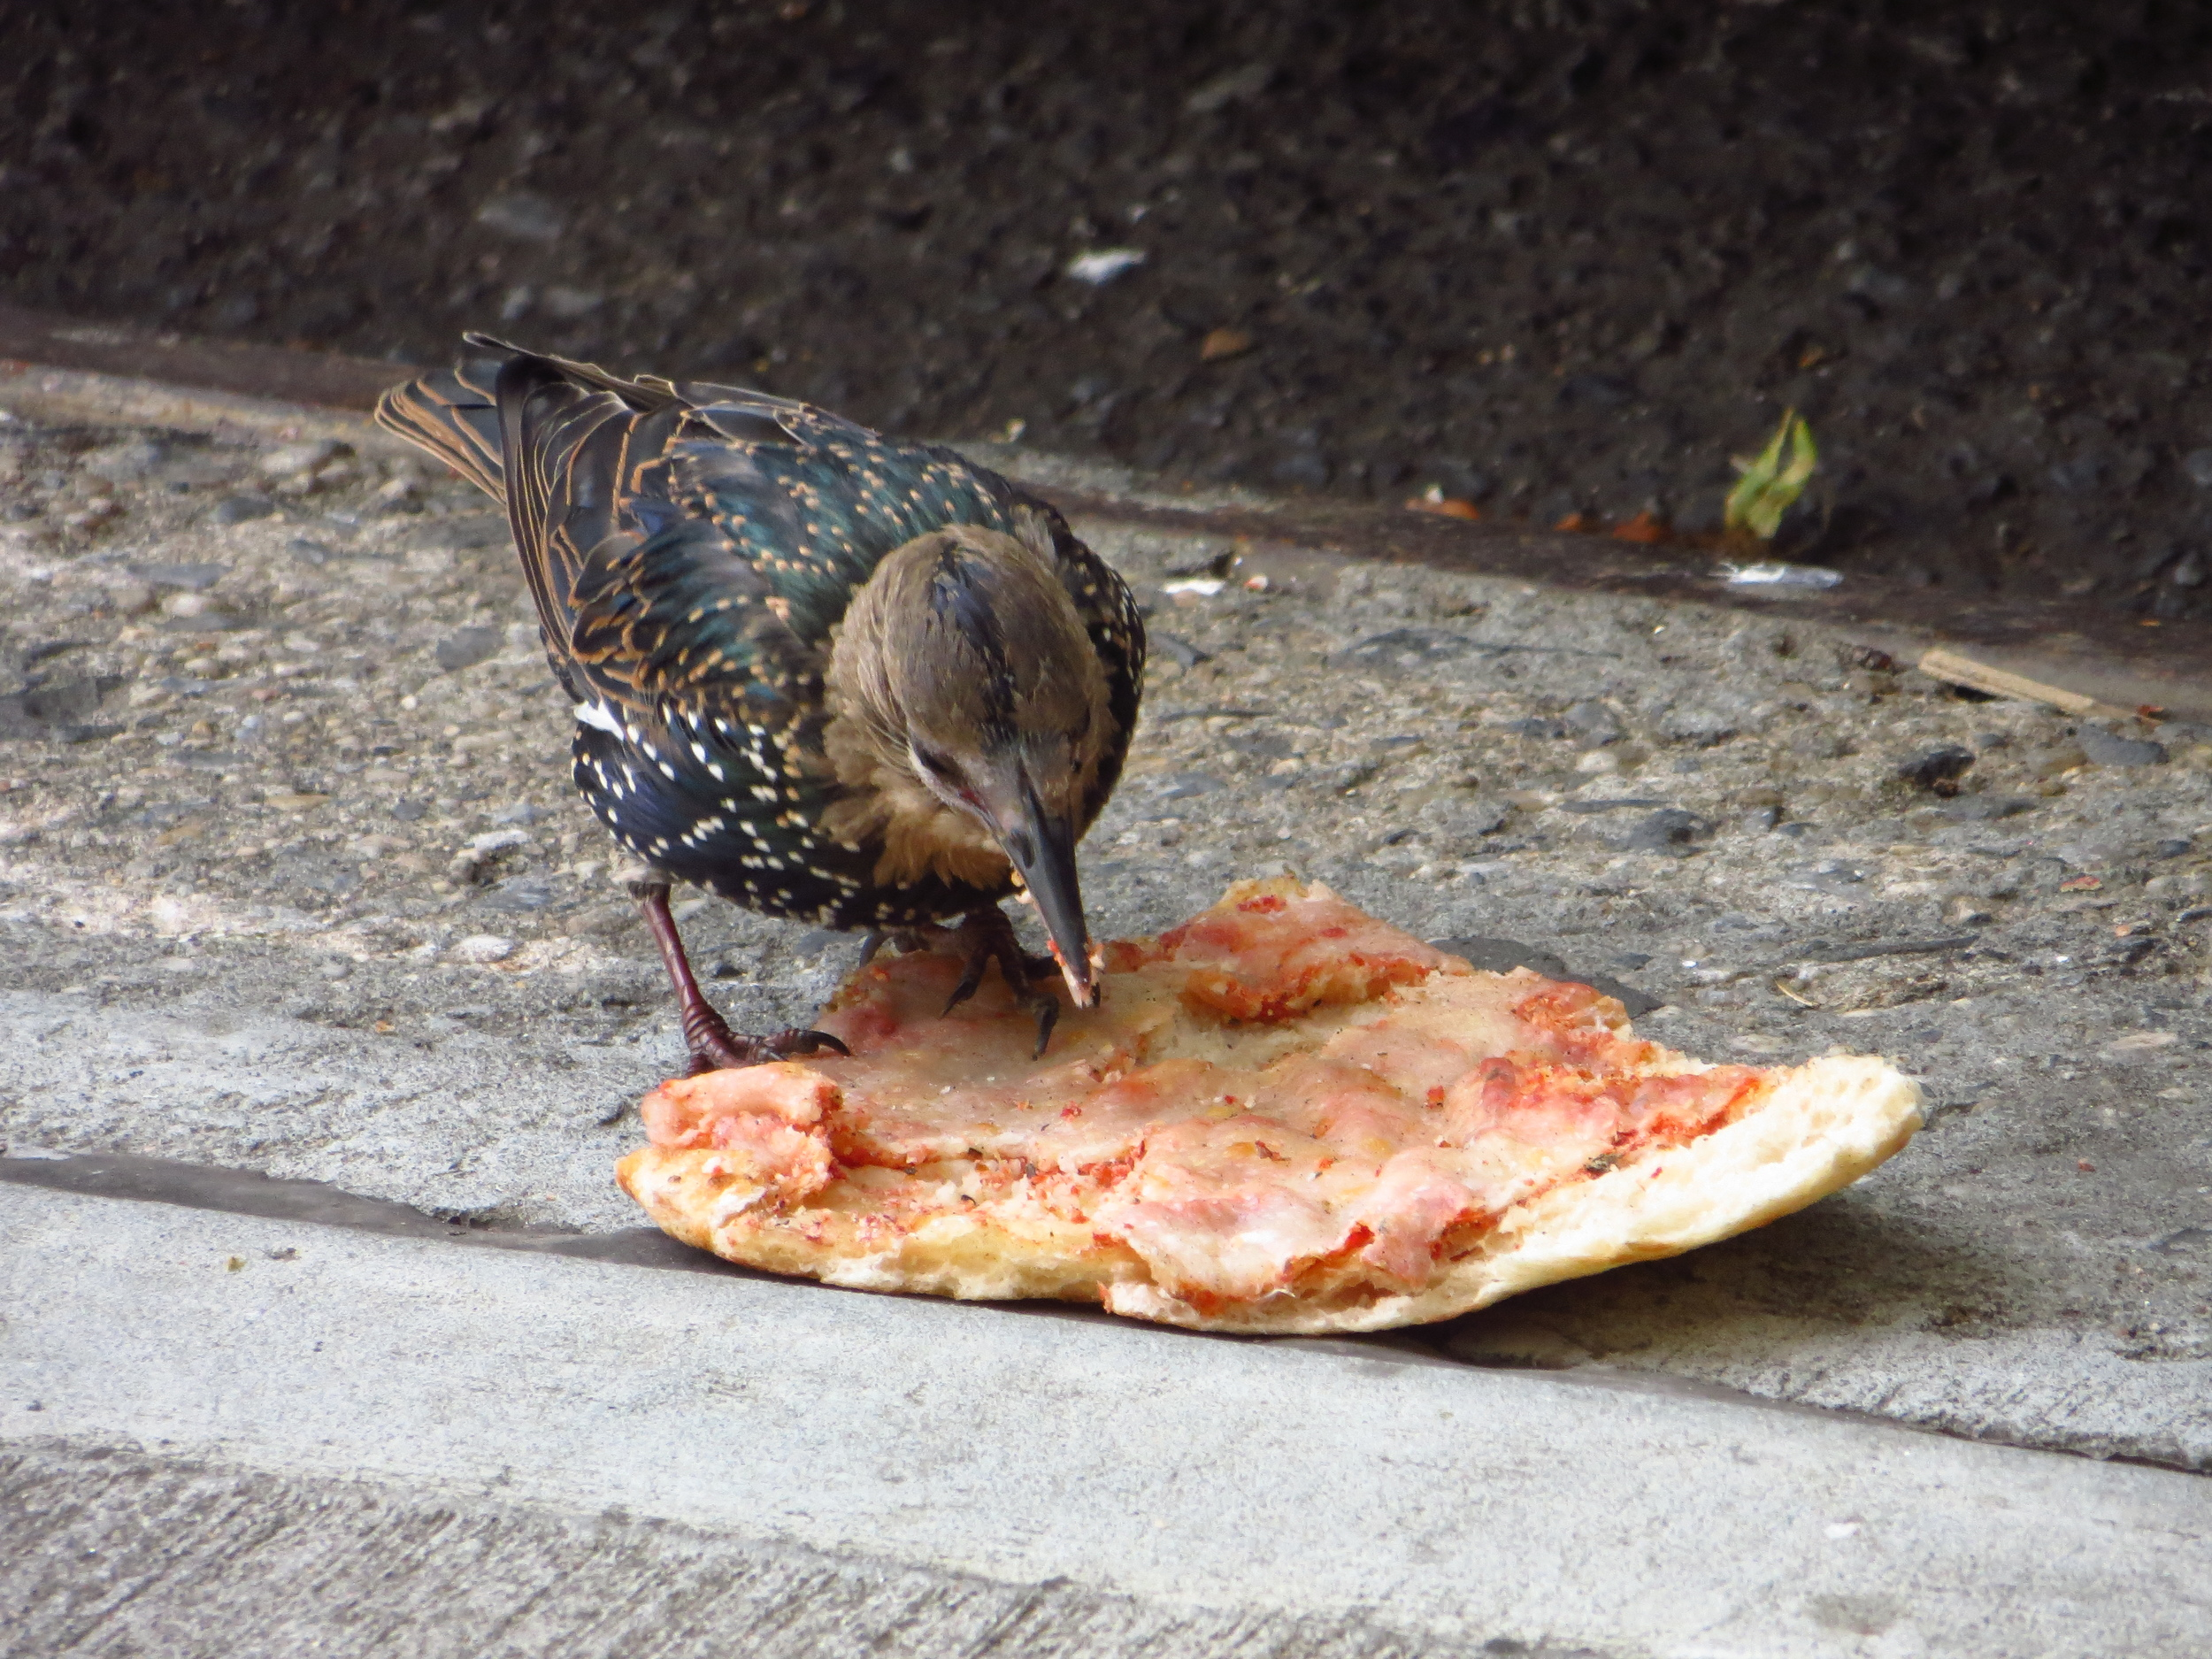 Starling w/pizza